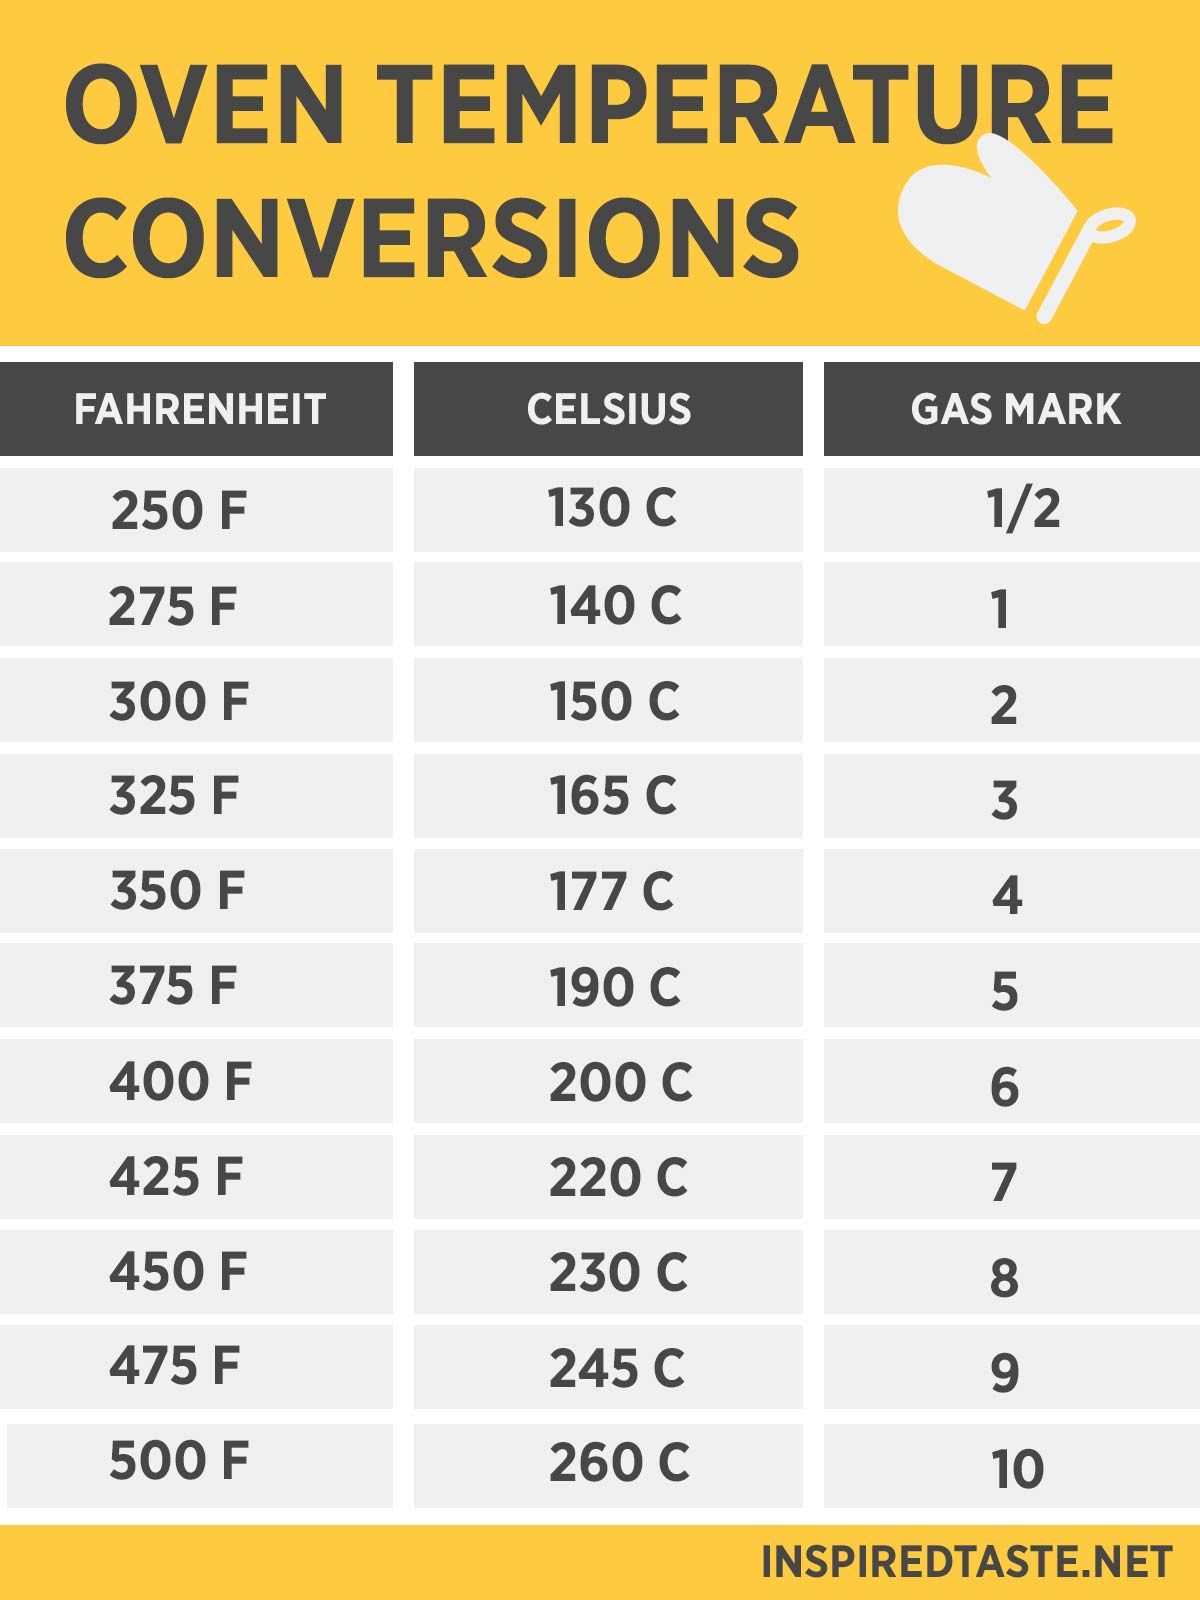 Oven temperature conversion chart fahrenheit celsius and gas mark also inspired taste recipes rh pinterest